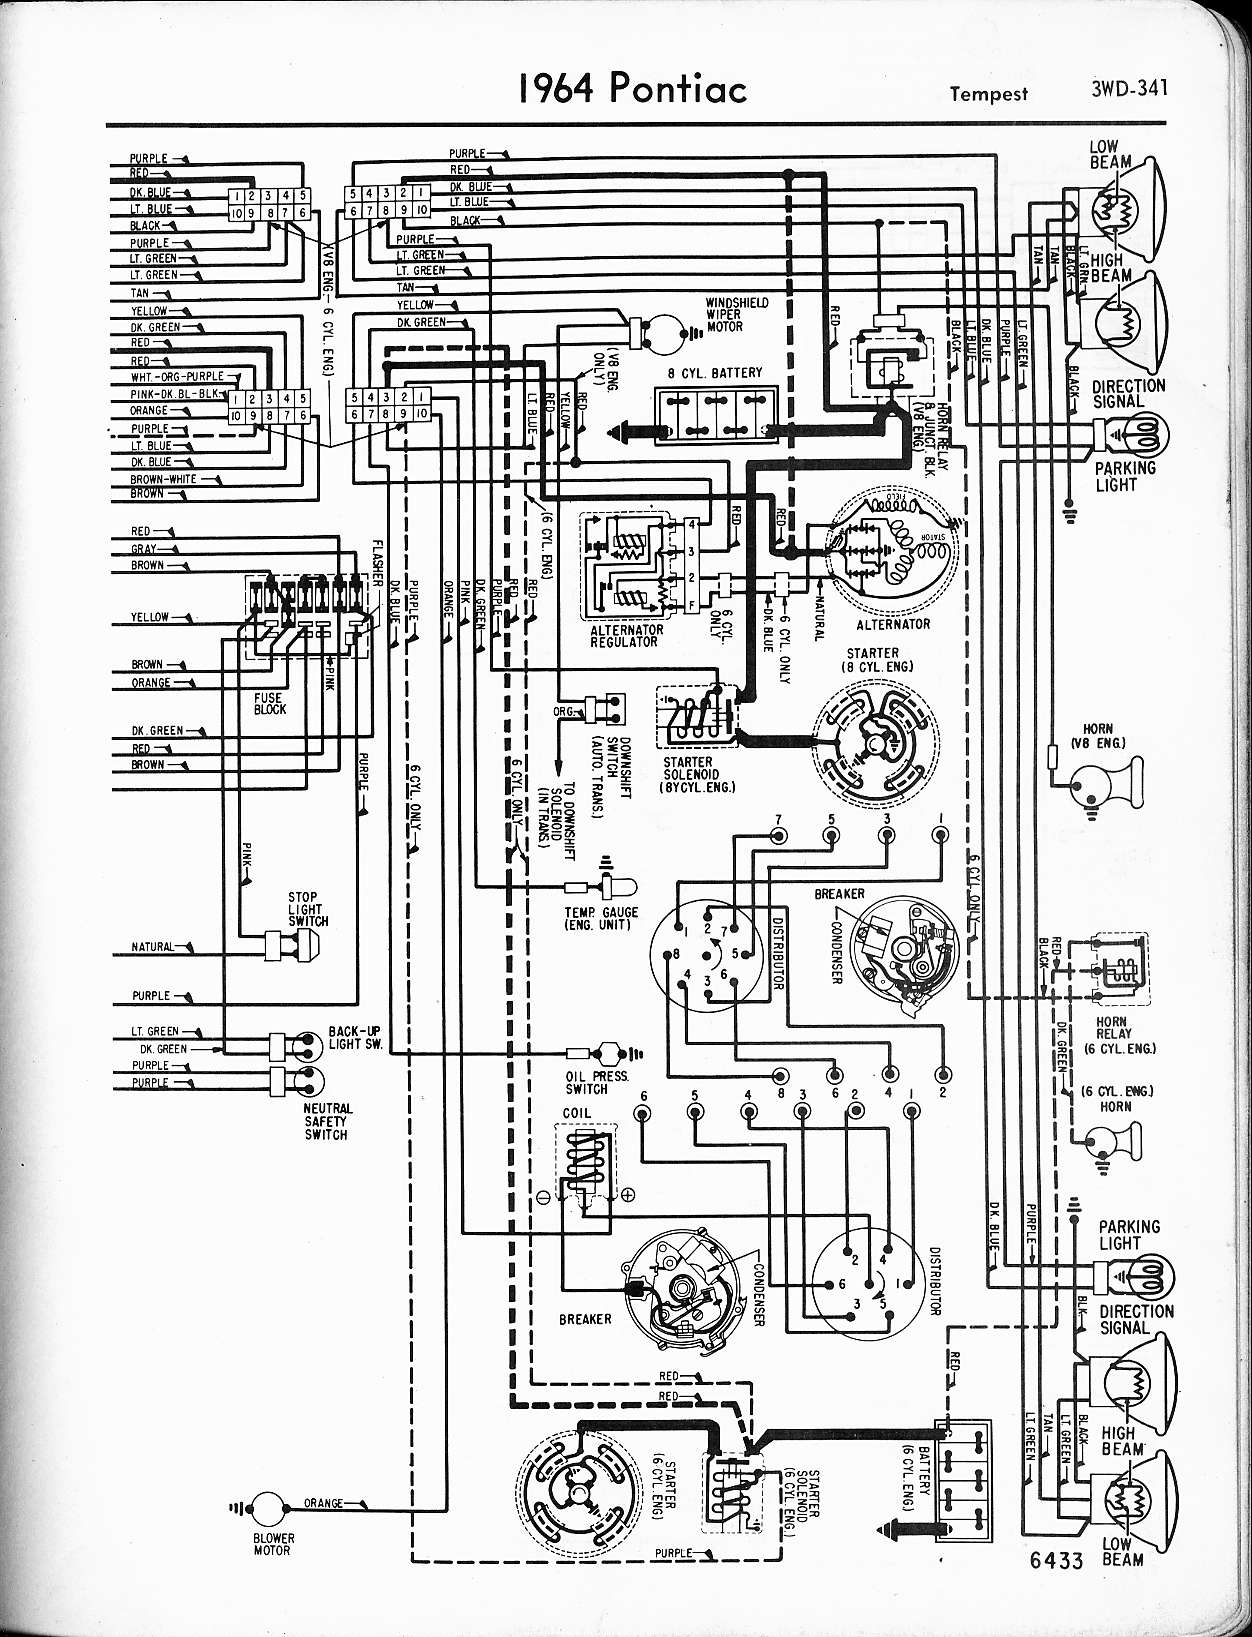 68 gto dash wiring diagram | online wiring diagram 1968 pontiac gto headlight wiring diagram schematic